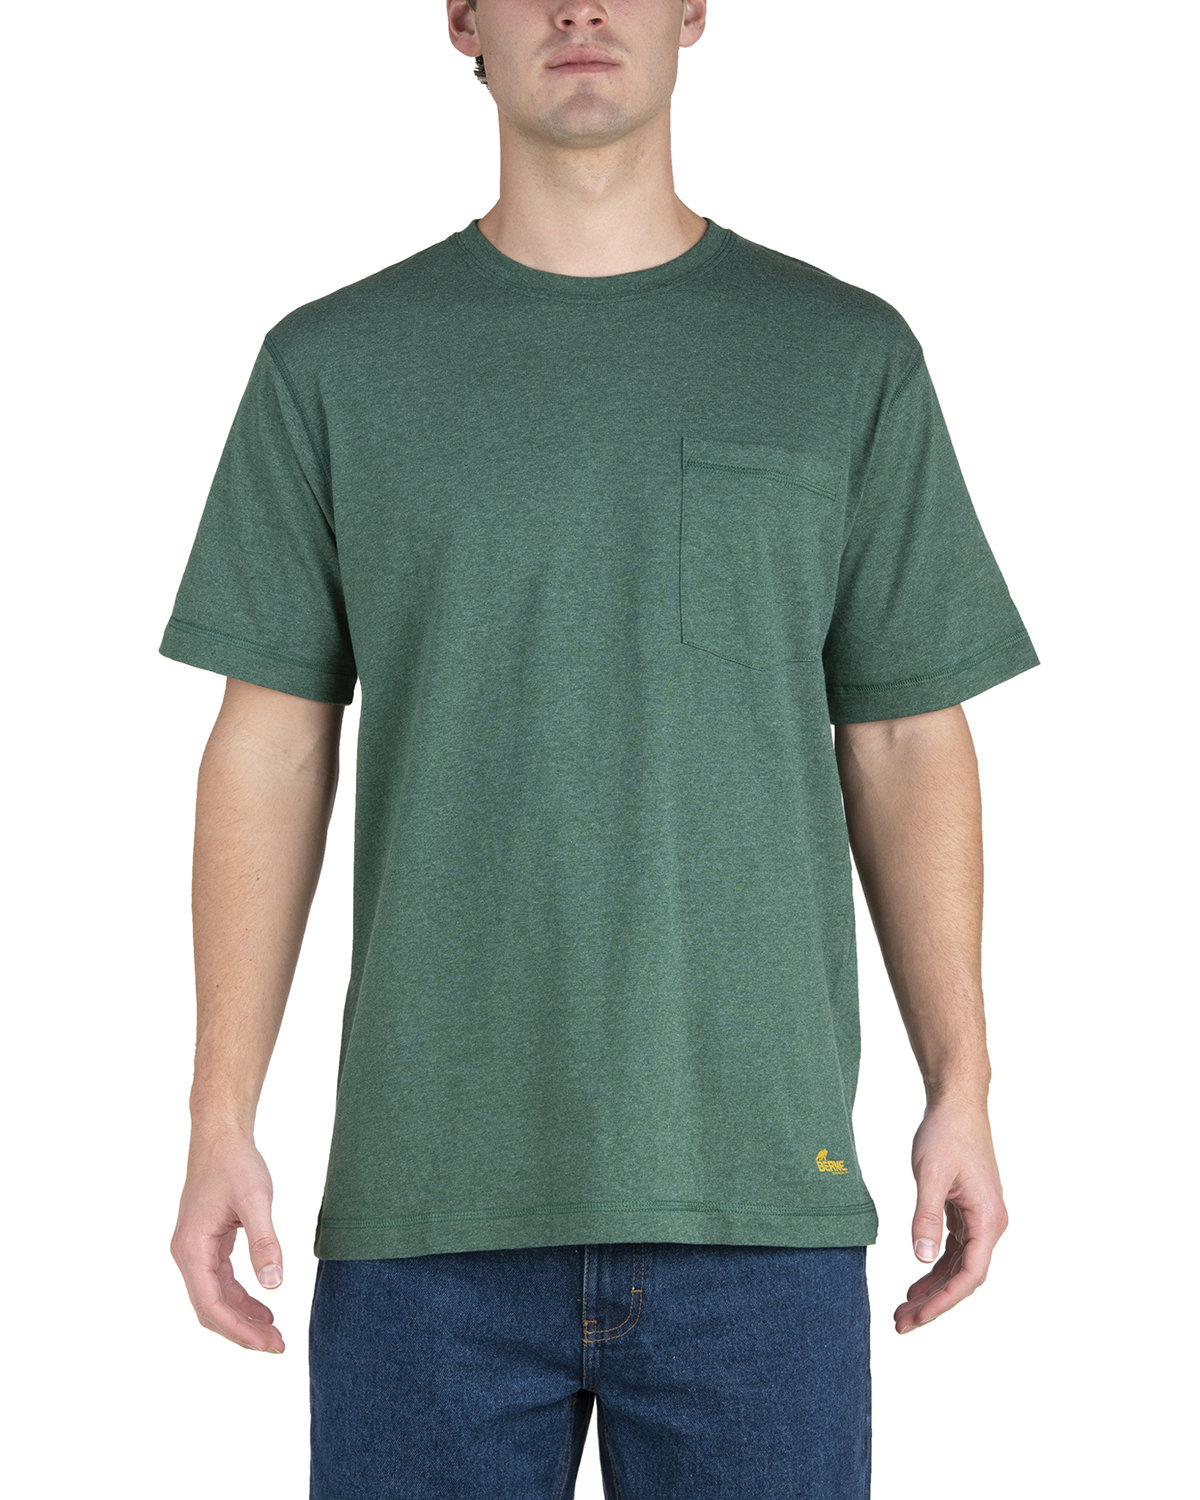 Berne Men's Lightweight Performance Pocket T-Shirt PINE